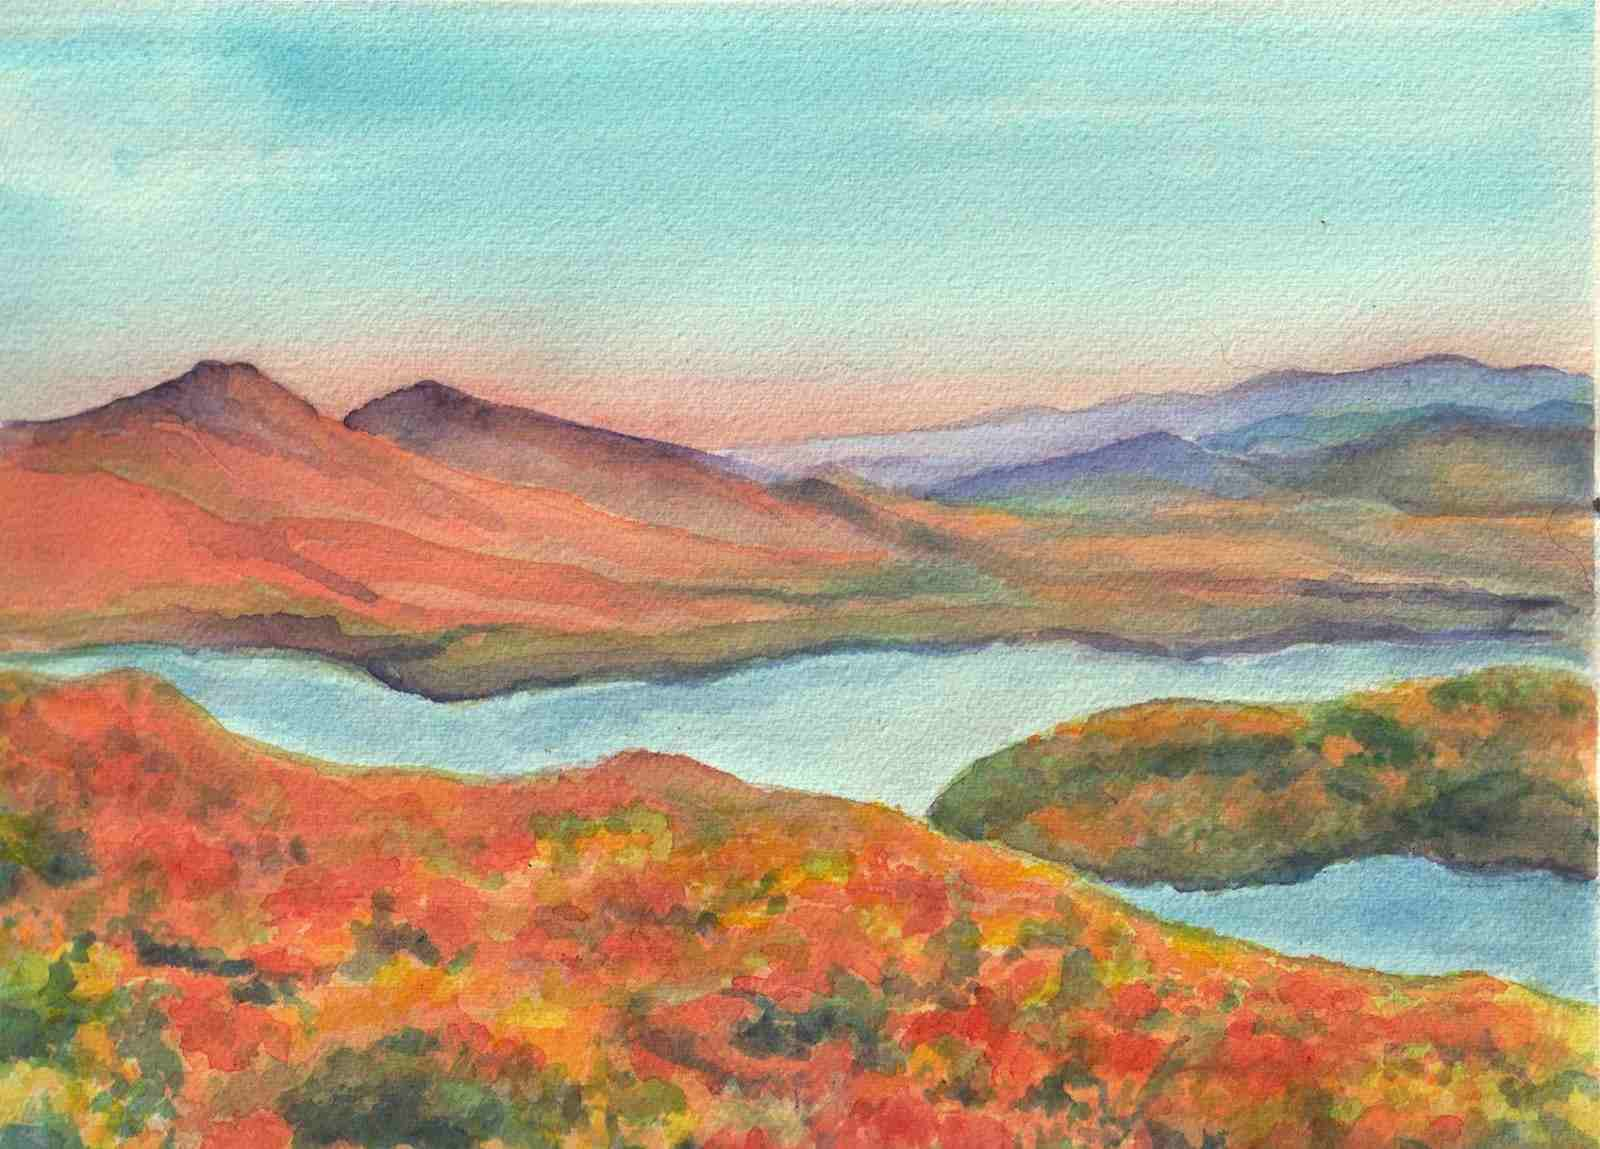 custom landscape from a photo turned into a watercolor painting